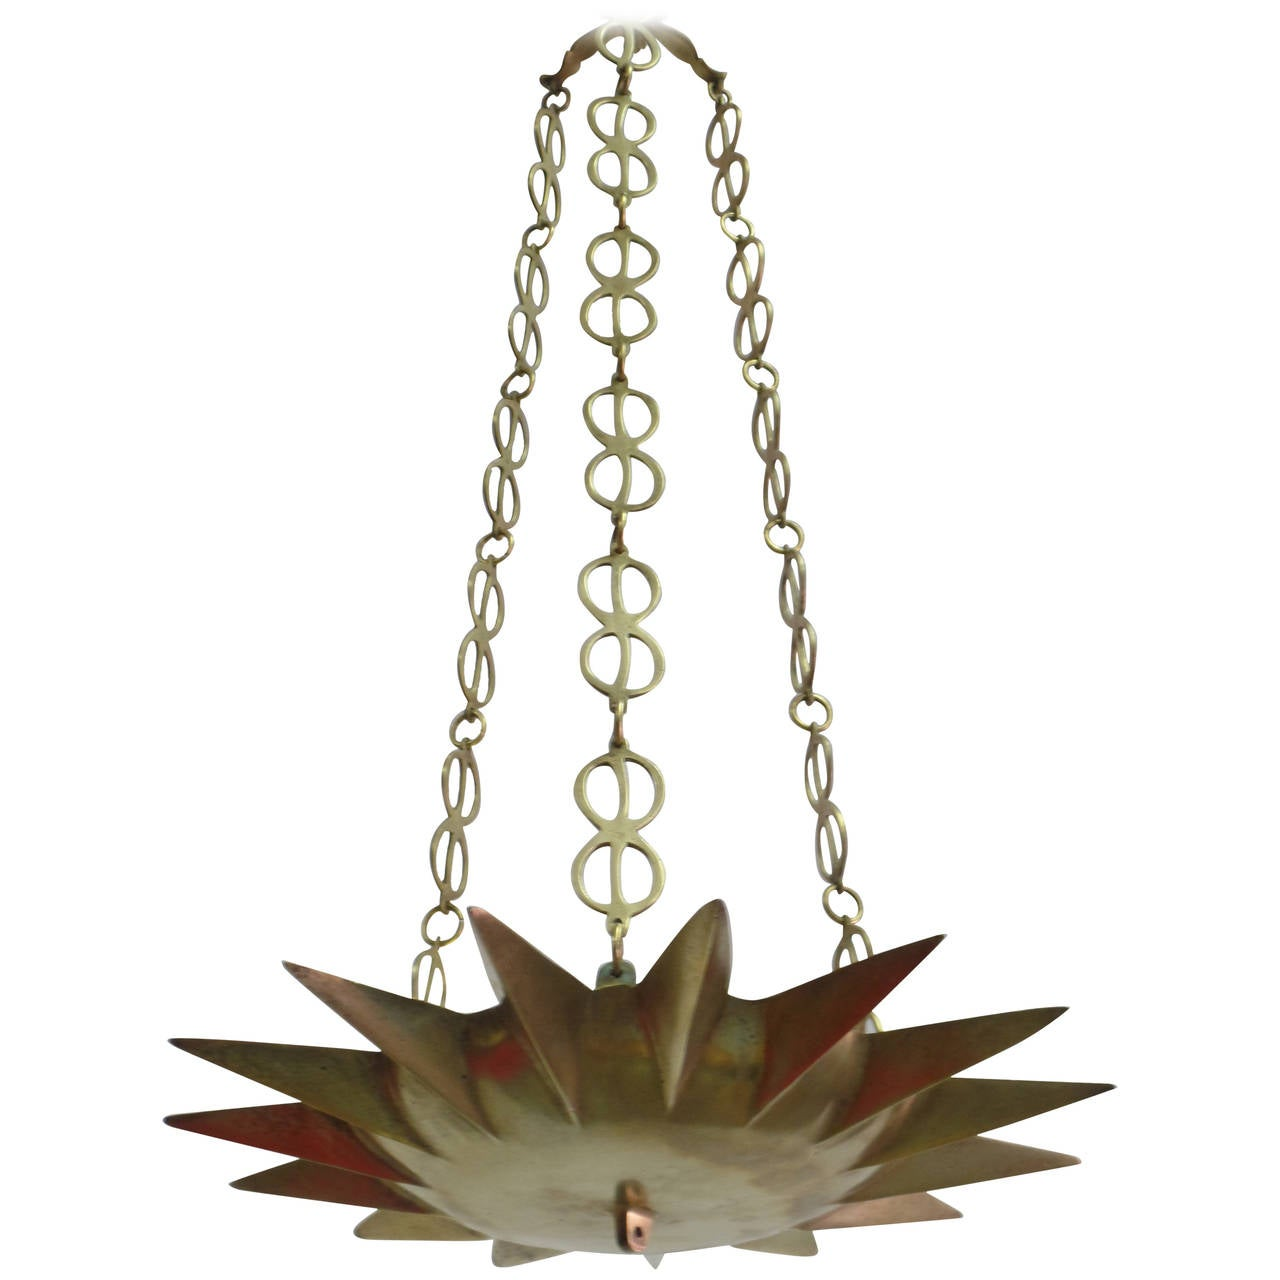 French Mid-Century Modern Neoclassical Gilt Bronze Sunburst Pendant / Chandelier